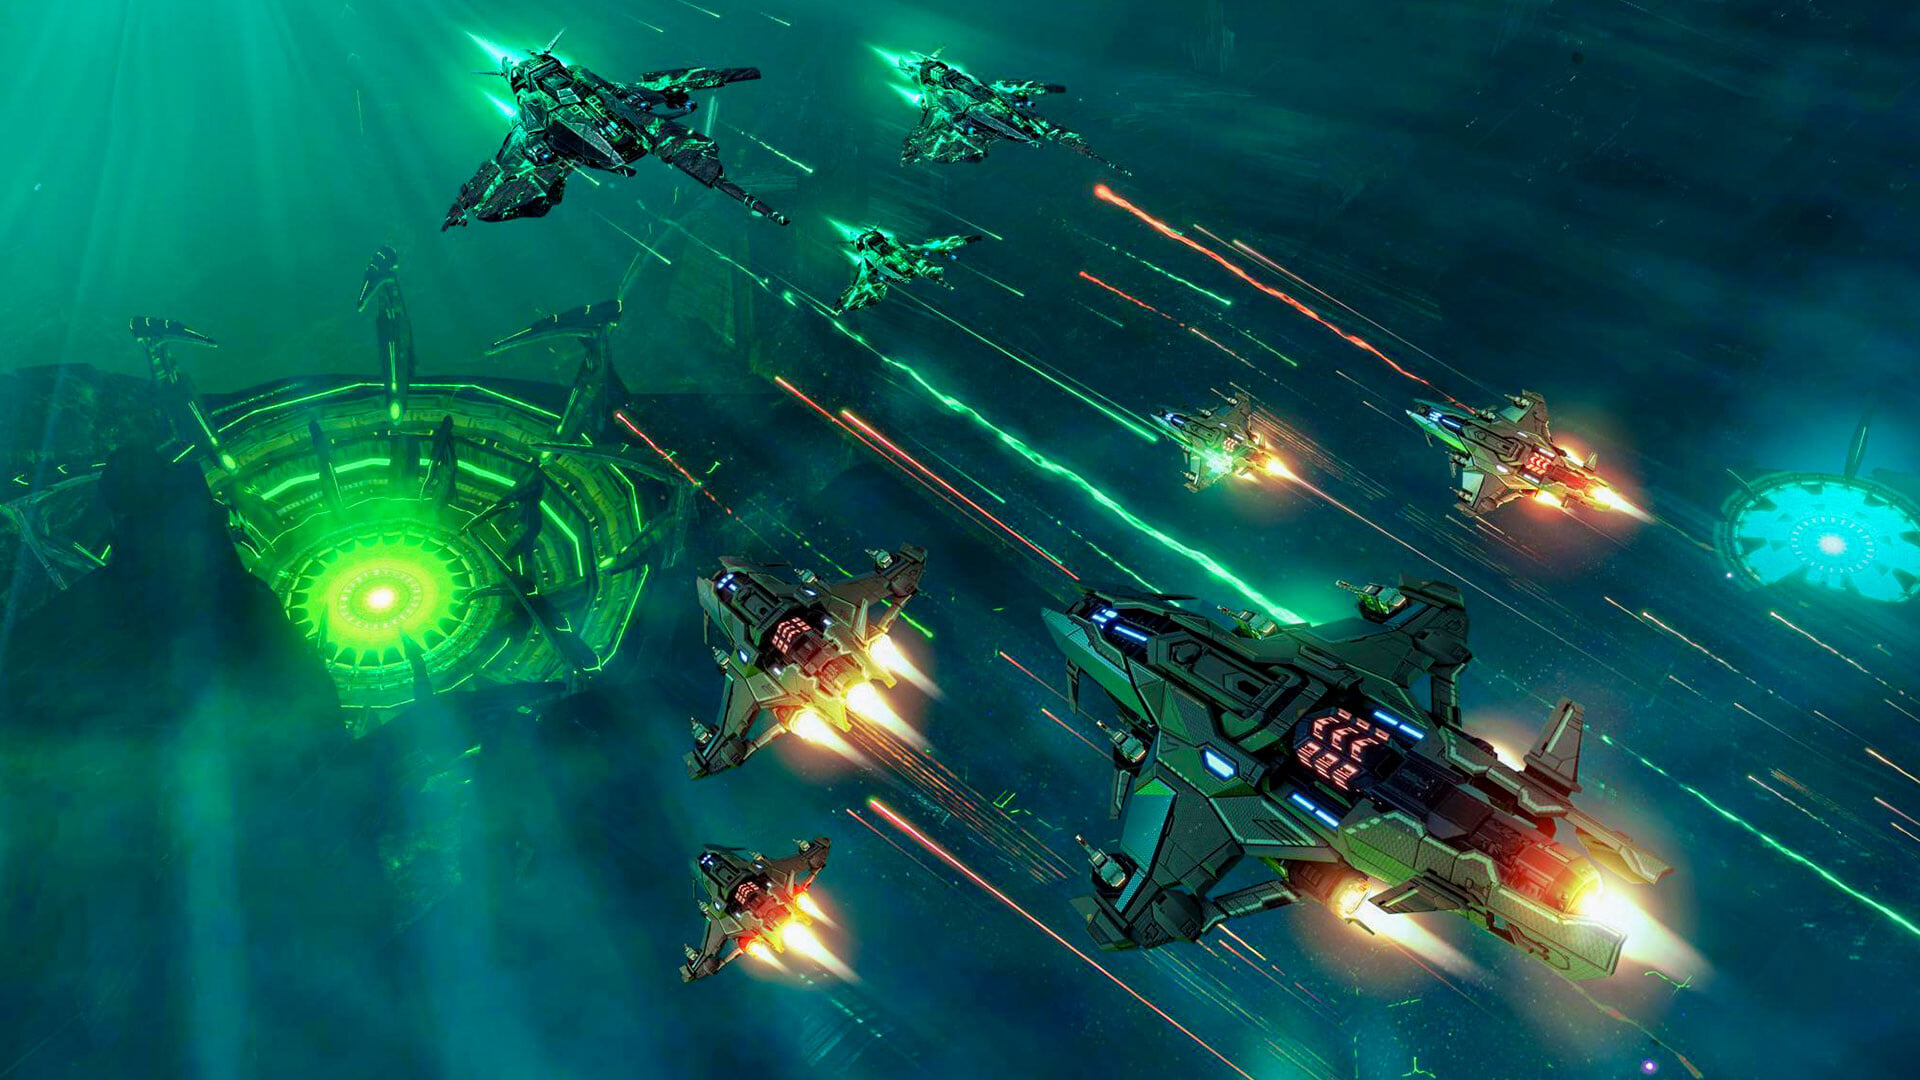 Star Conflict, Экшены, PlayStation 4, ПК, MMO, Xbox, Xbox One, Xbox Series X, War Thunder, PlayStation 5